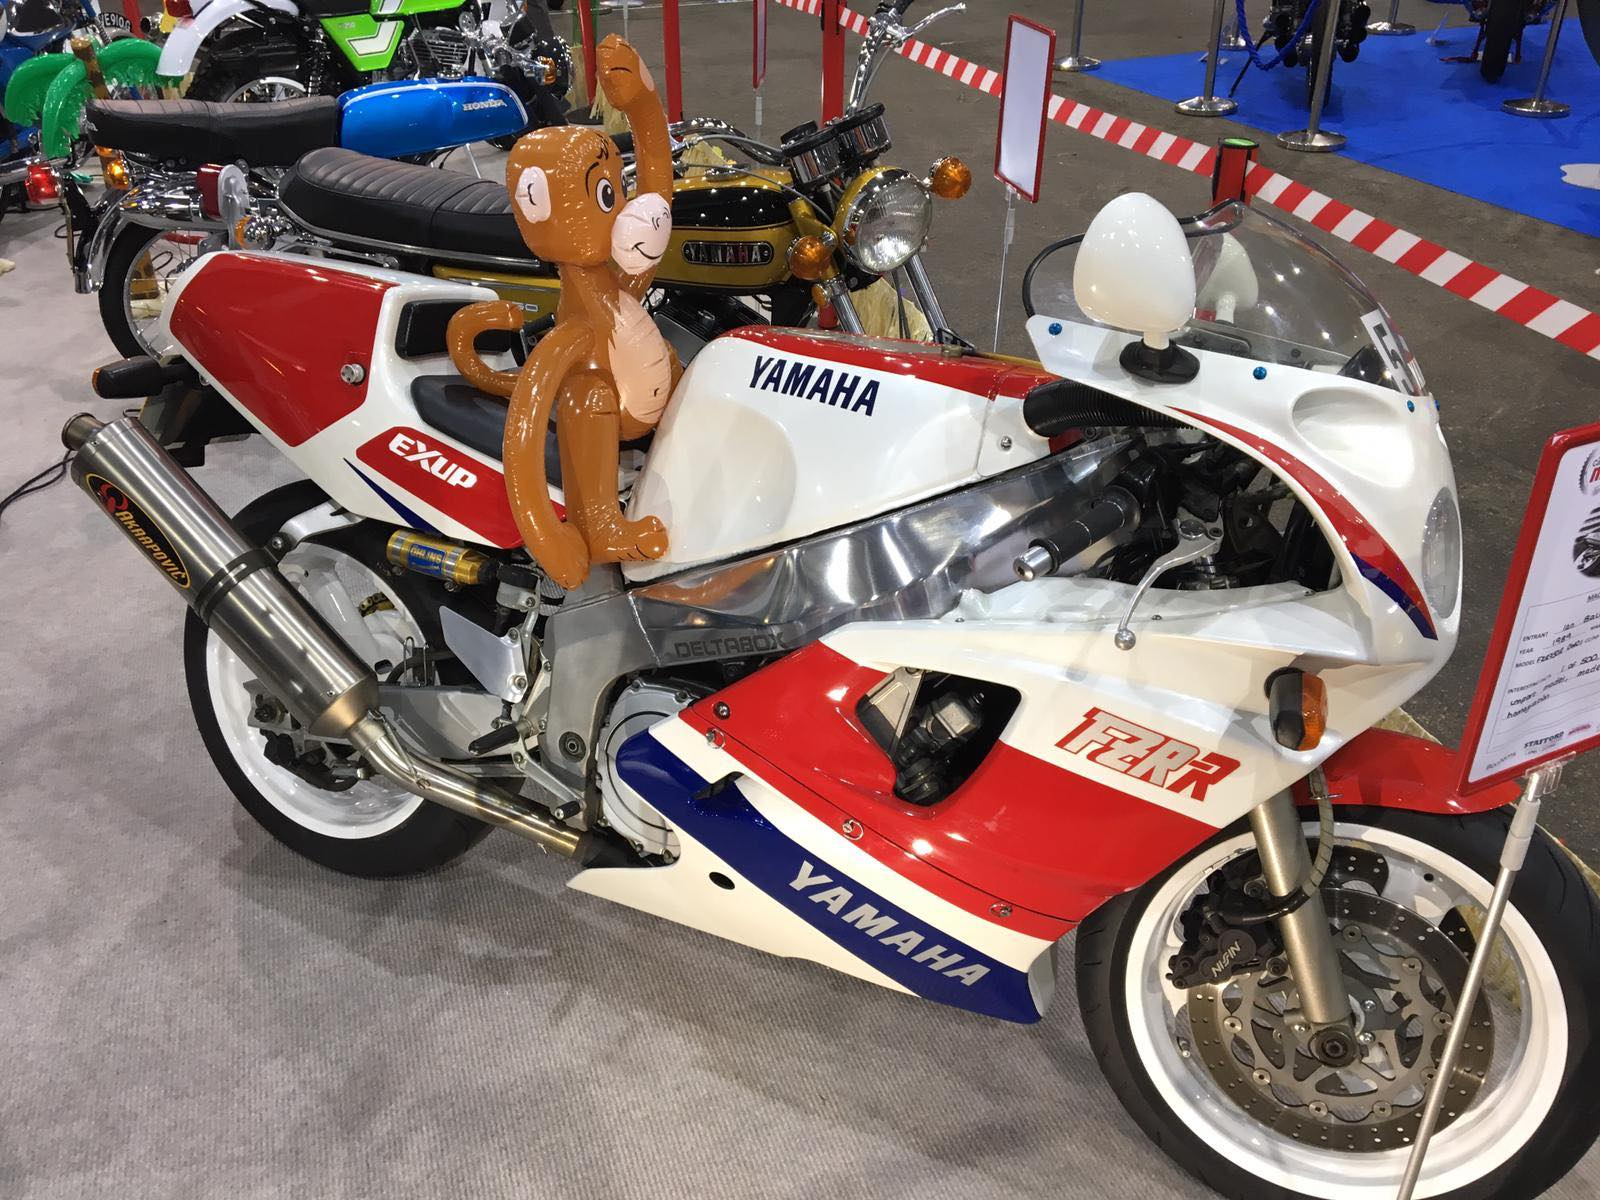 Yamaha driven by a monkey!